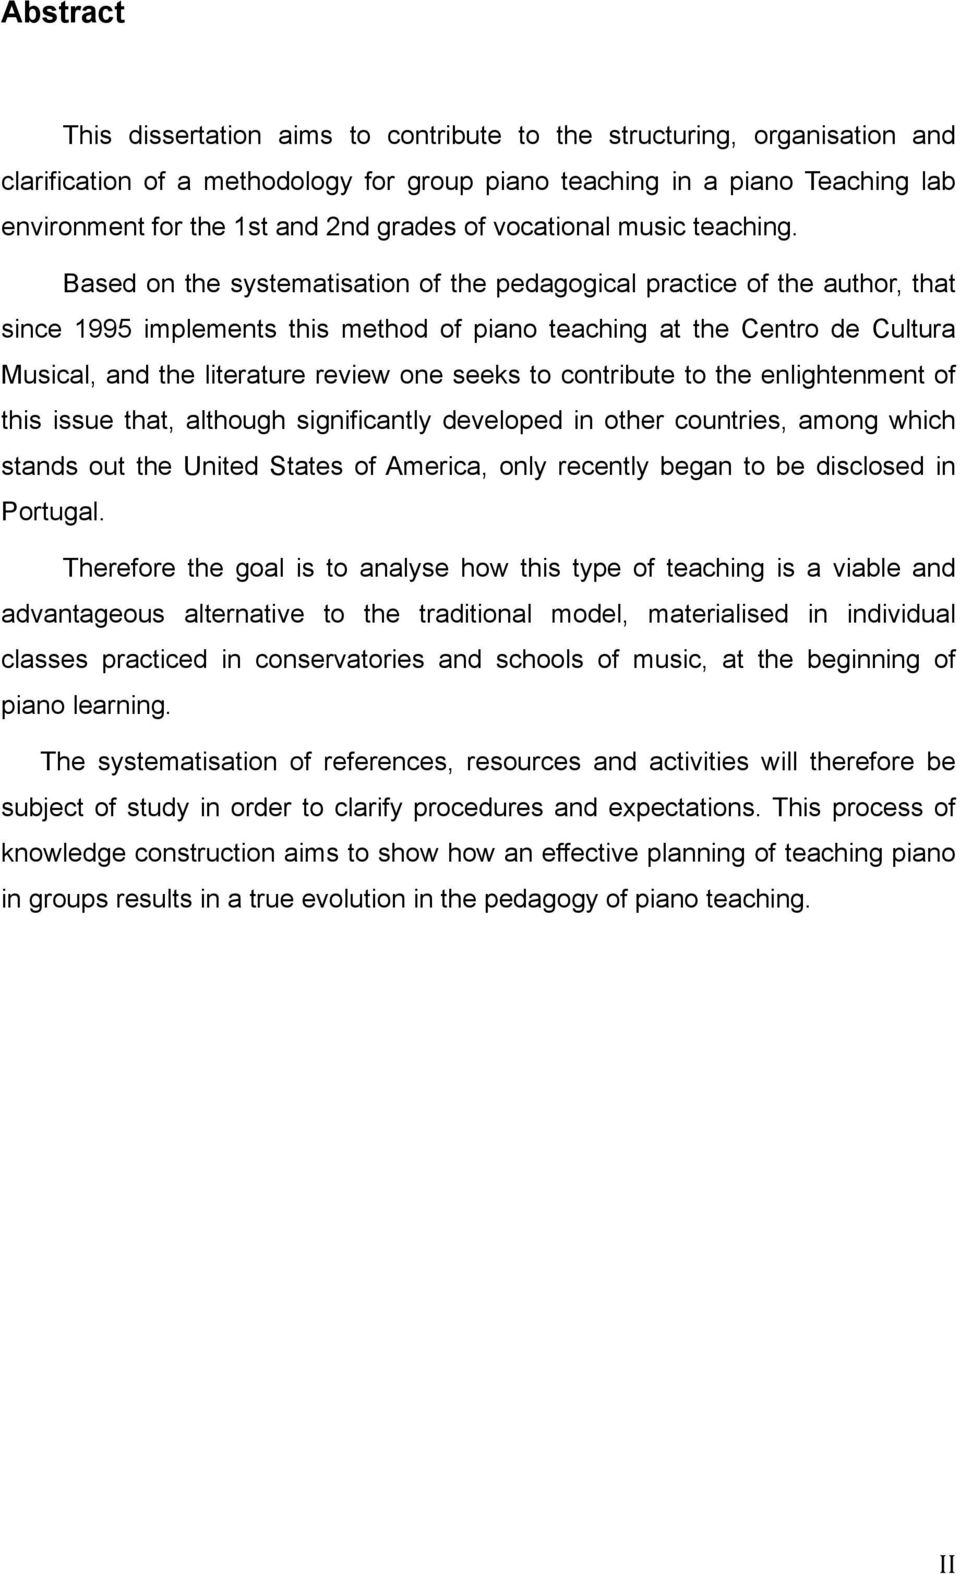 Based on the systematisation of the pedagogical practice of the author, that since 1995 implements this method of piano teaching at the Centro de Cultura Musical, and the literature review one seeks